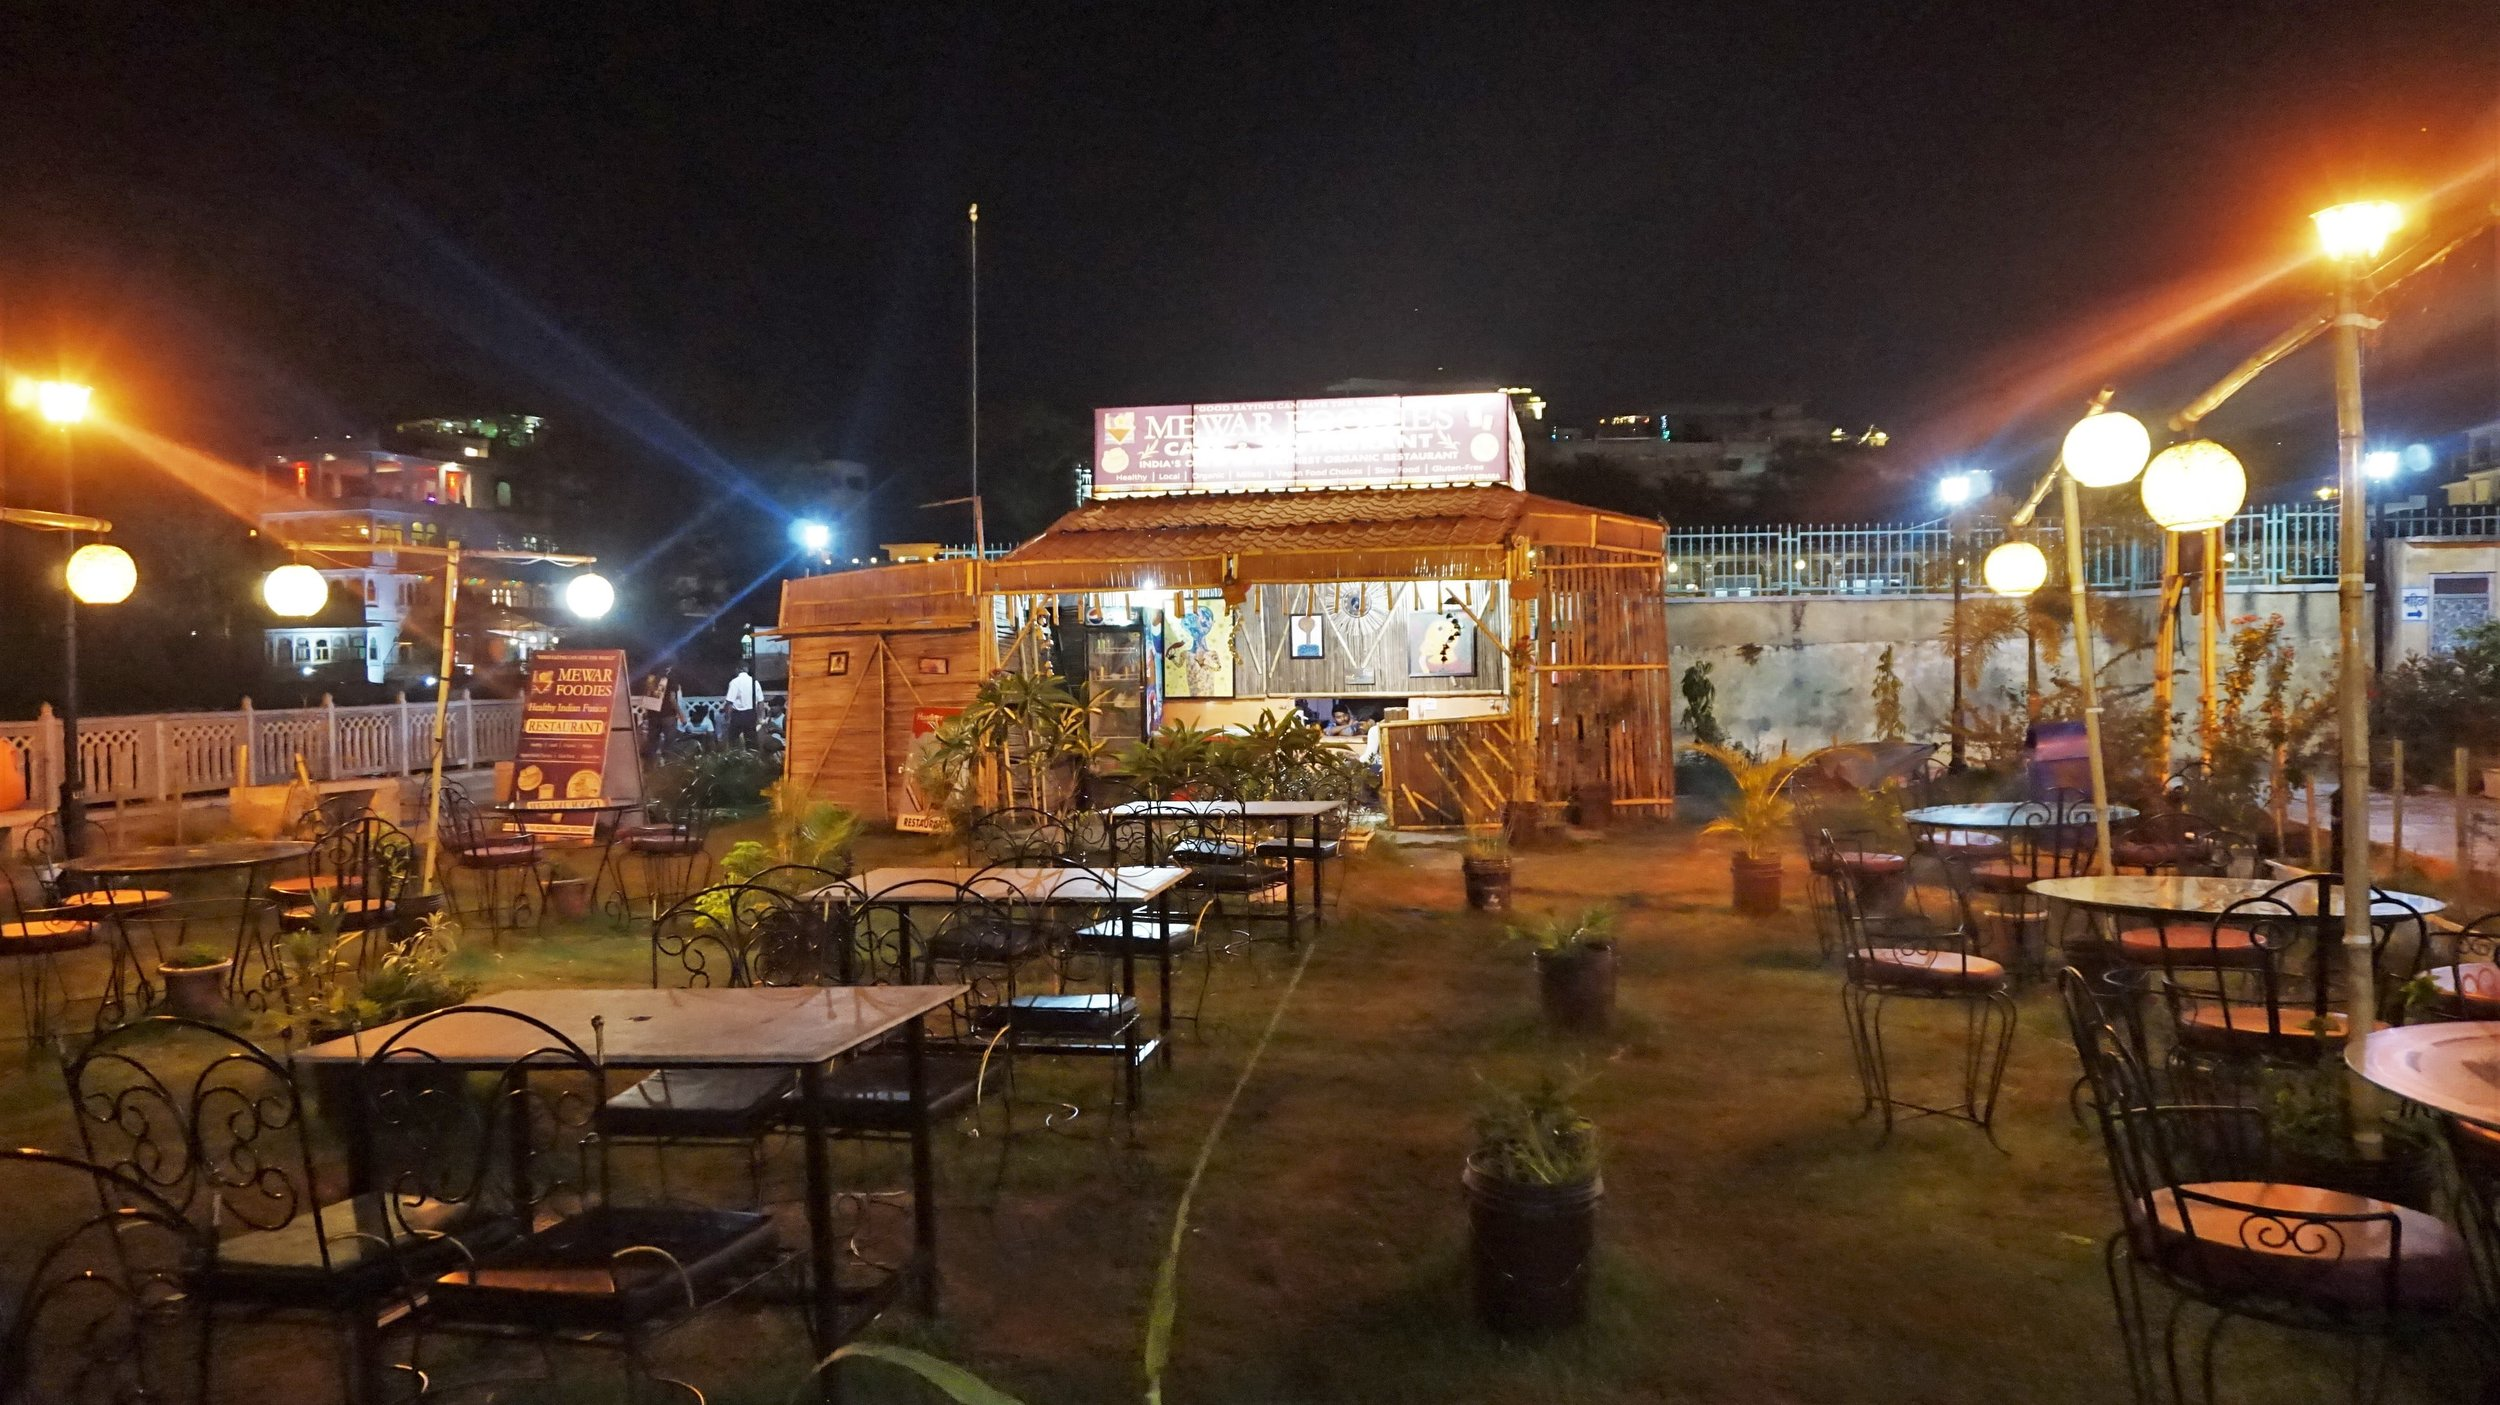 There are some very nice places to visit in Udaipur if you like good and healthy food.